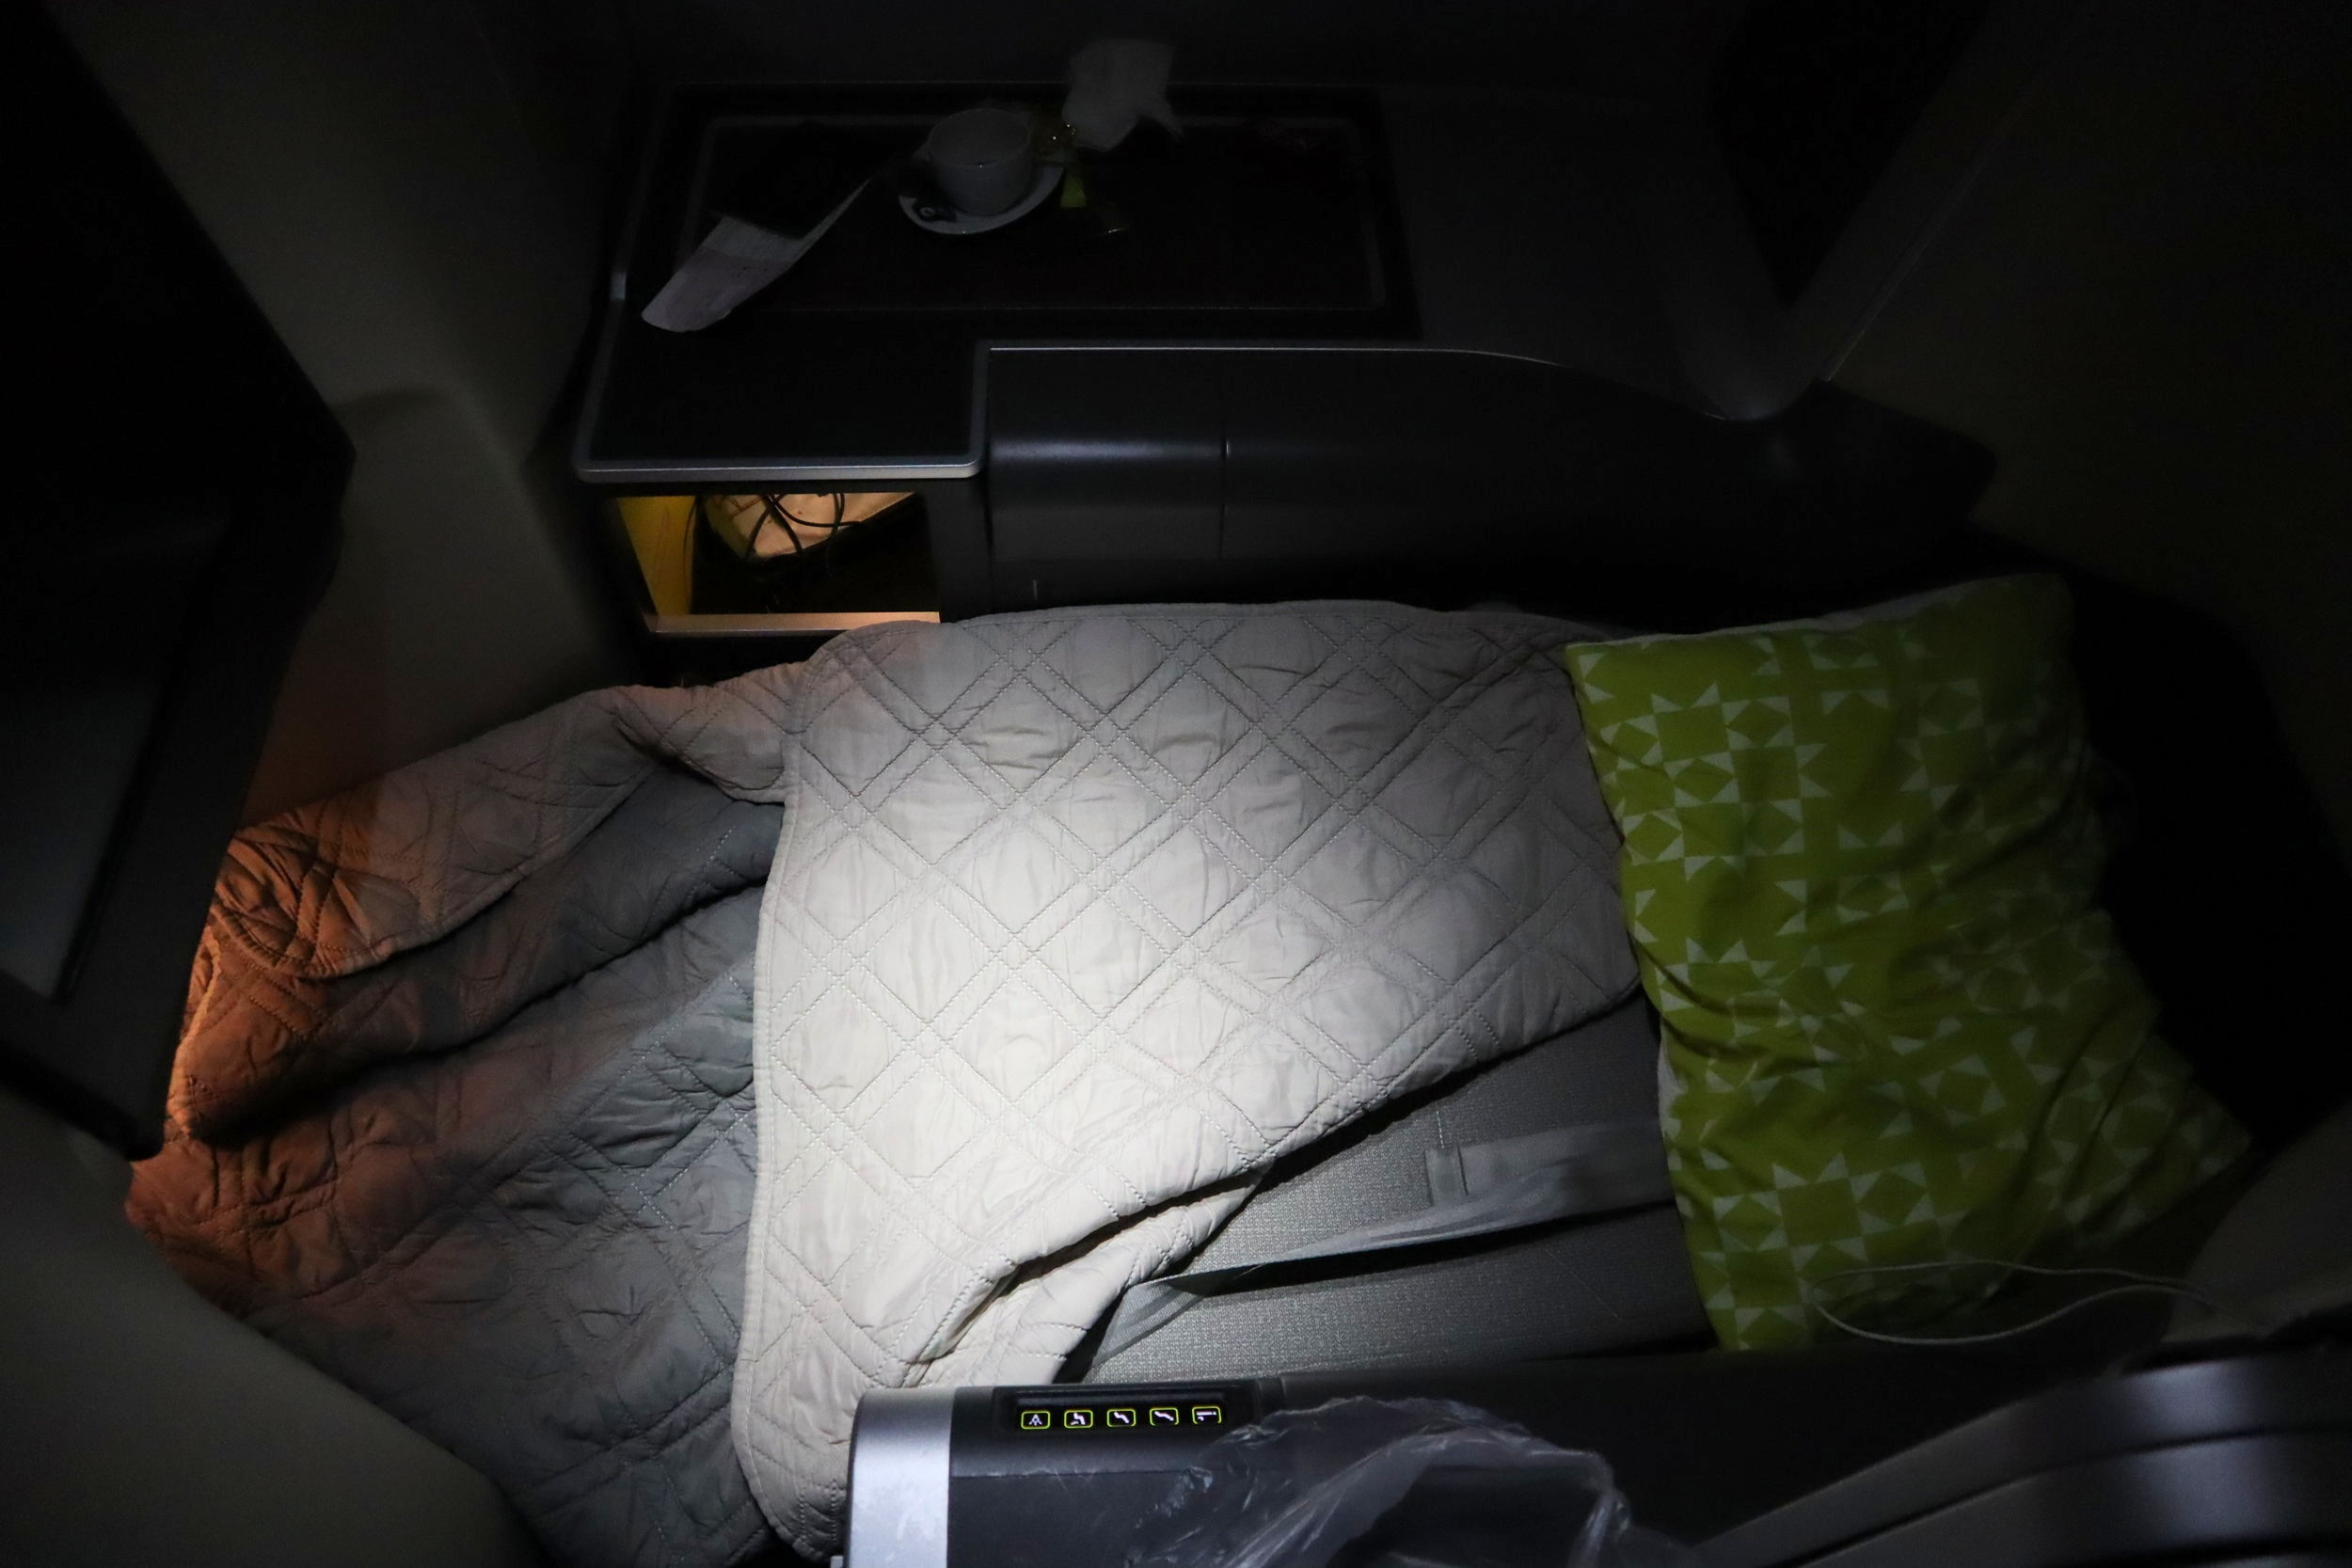 TAP Air Portugal business class – Bed